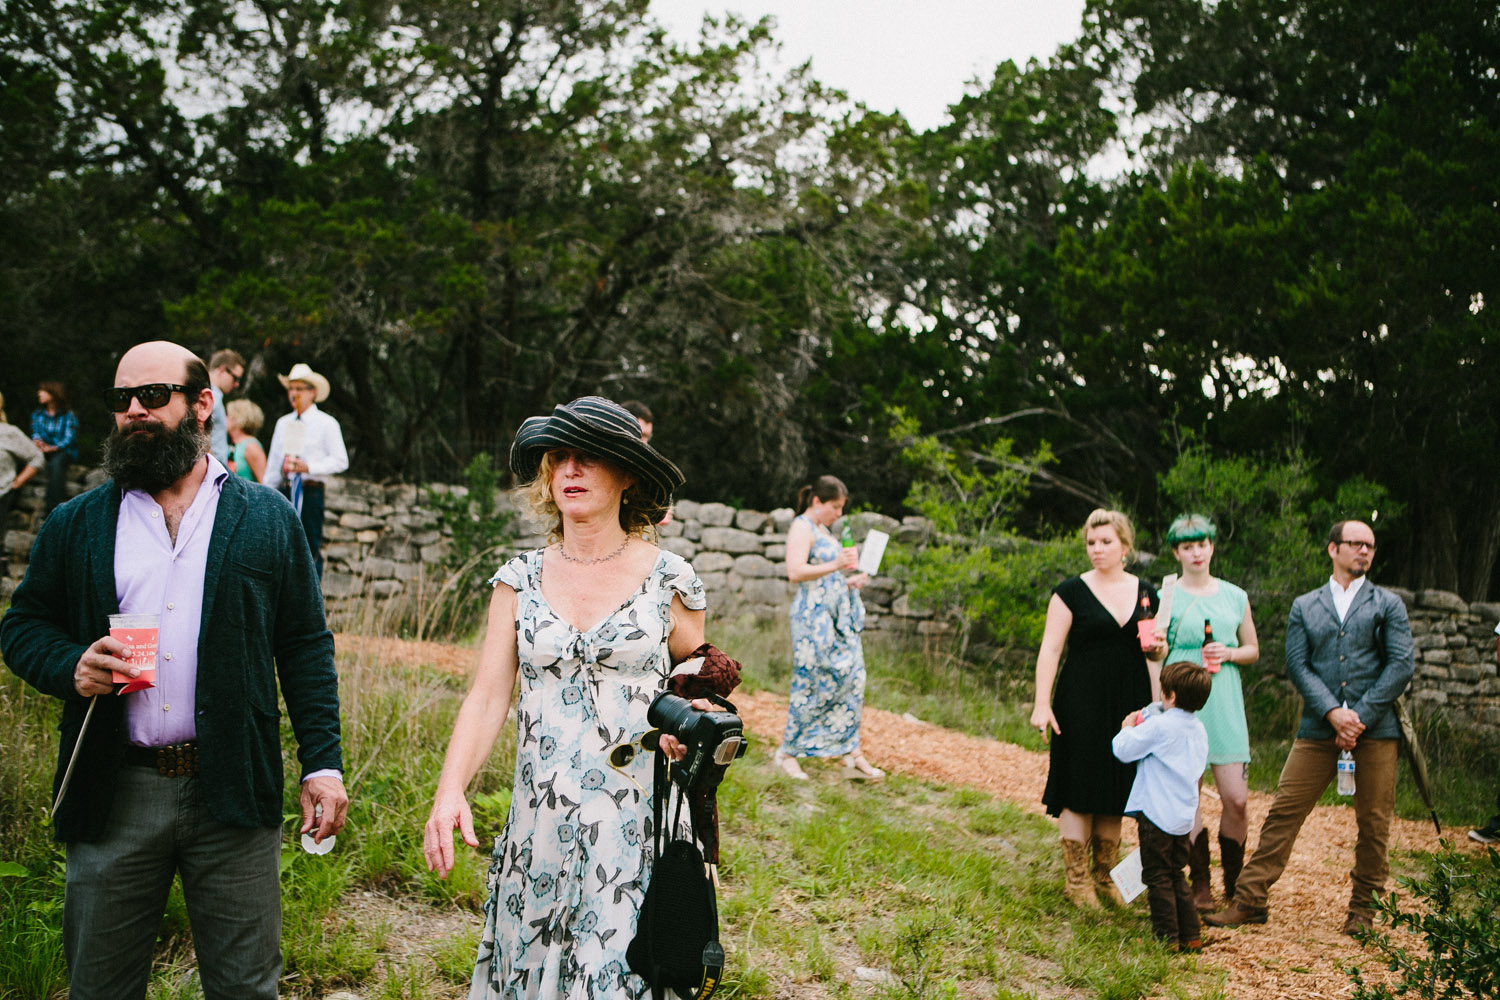 Home Ranch Wedding Guests   Hill Country of Texas   Lisa Woods Photography